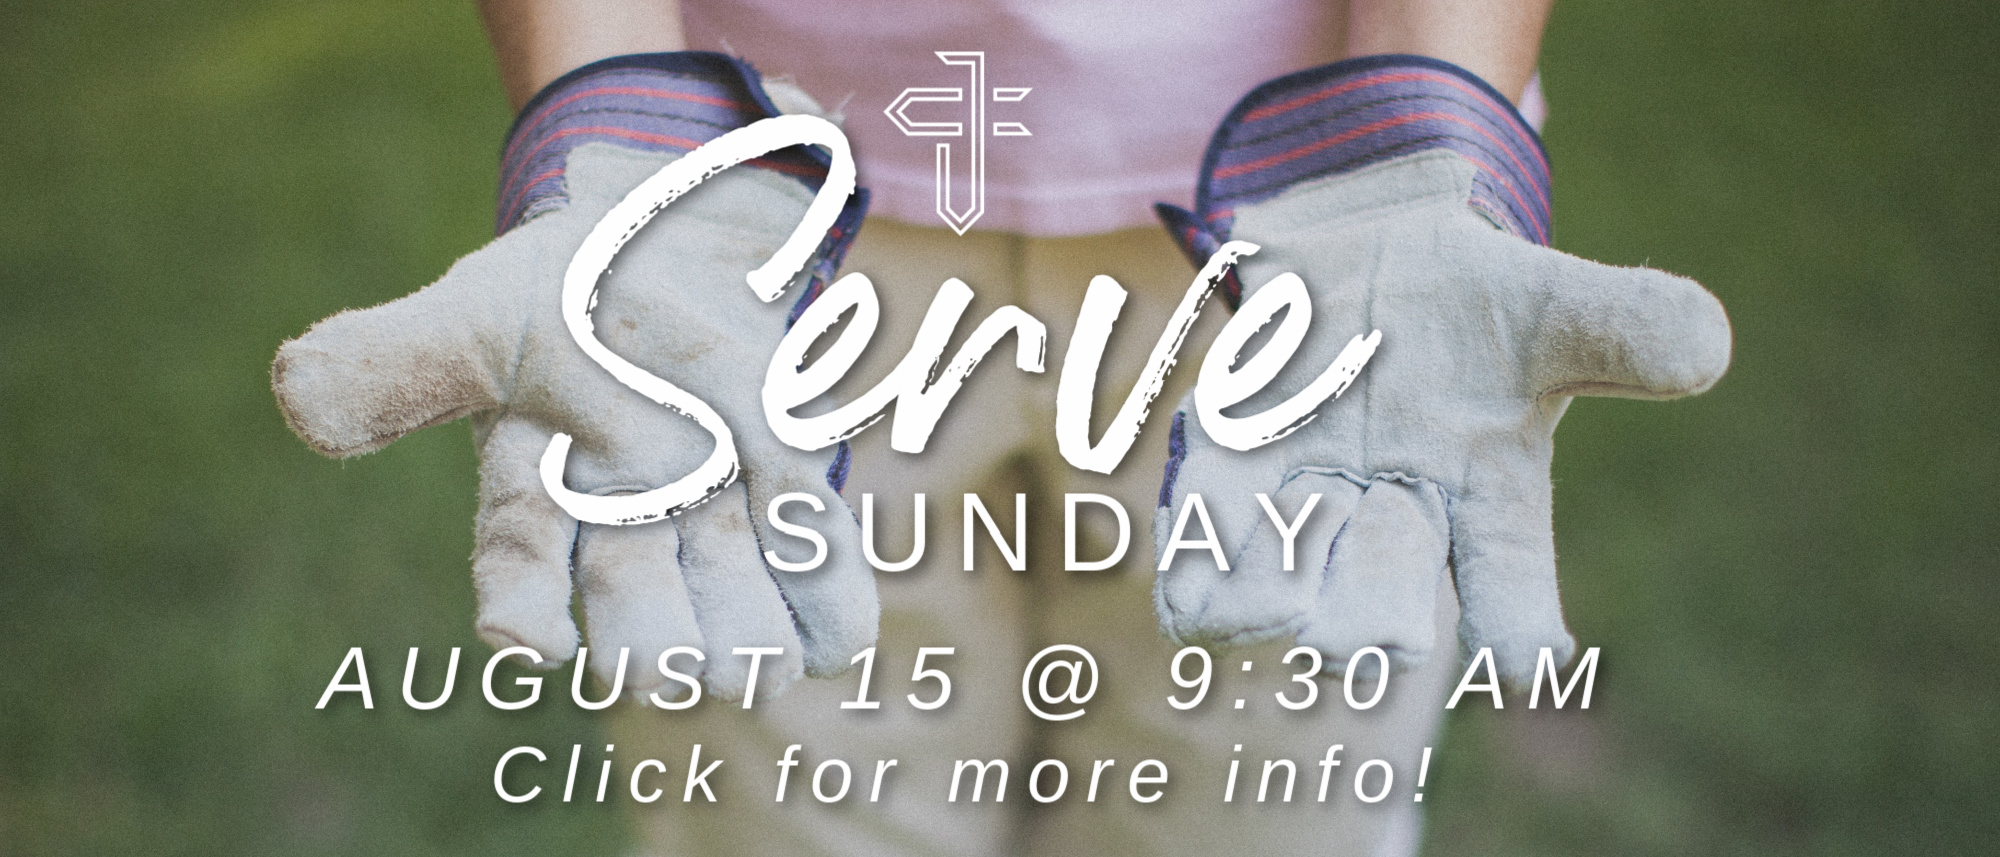 Let's serve our community together on Sunday, August 15th at 9:30 AM!